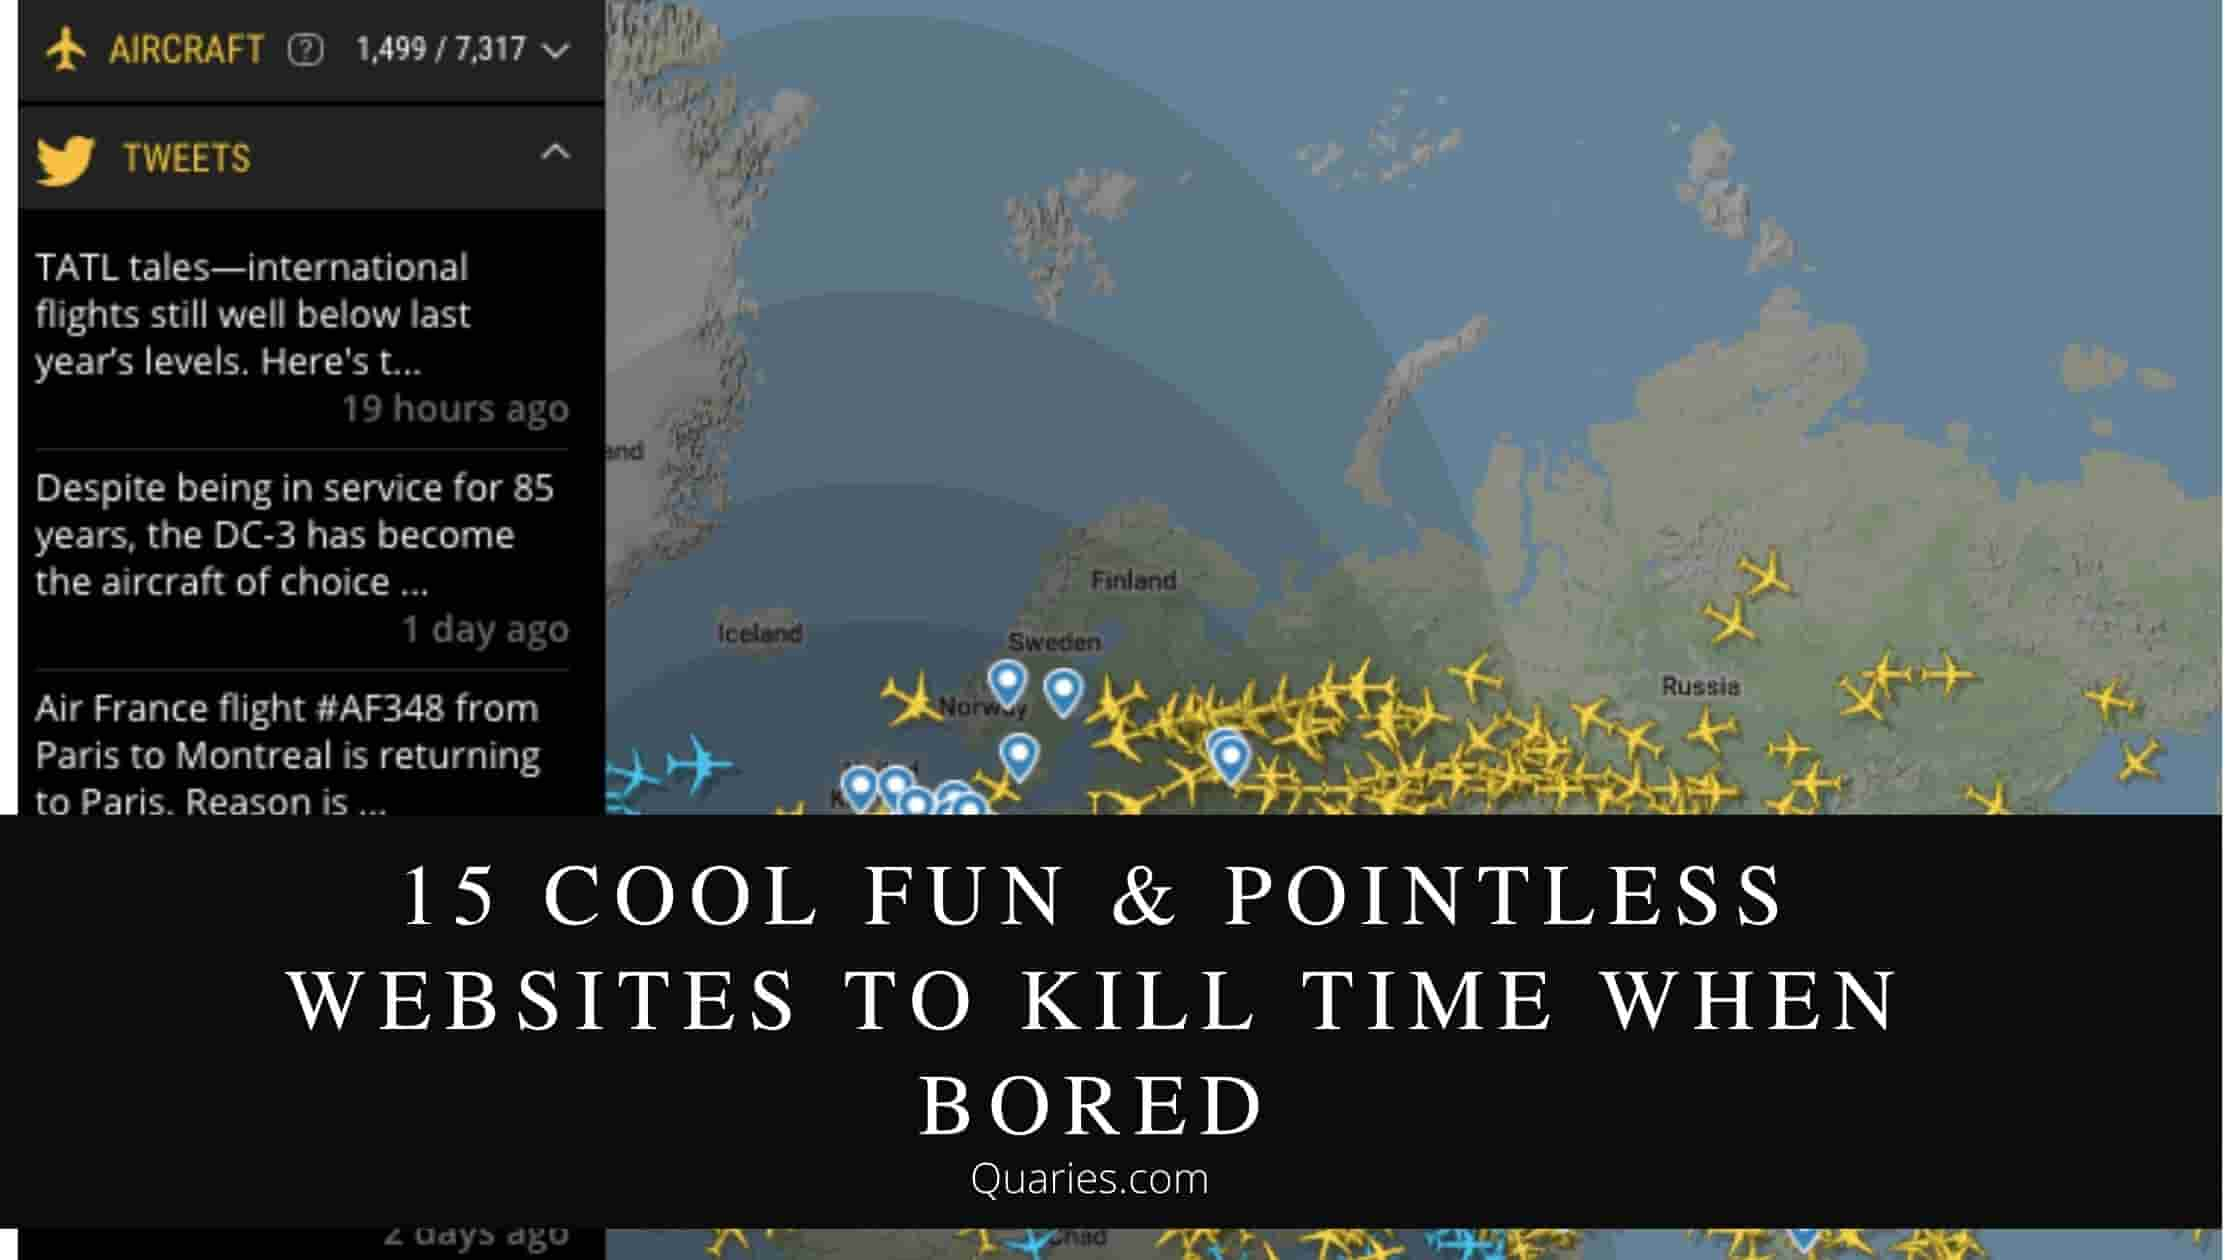 Cool Fun & Pointless Websites